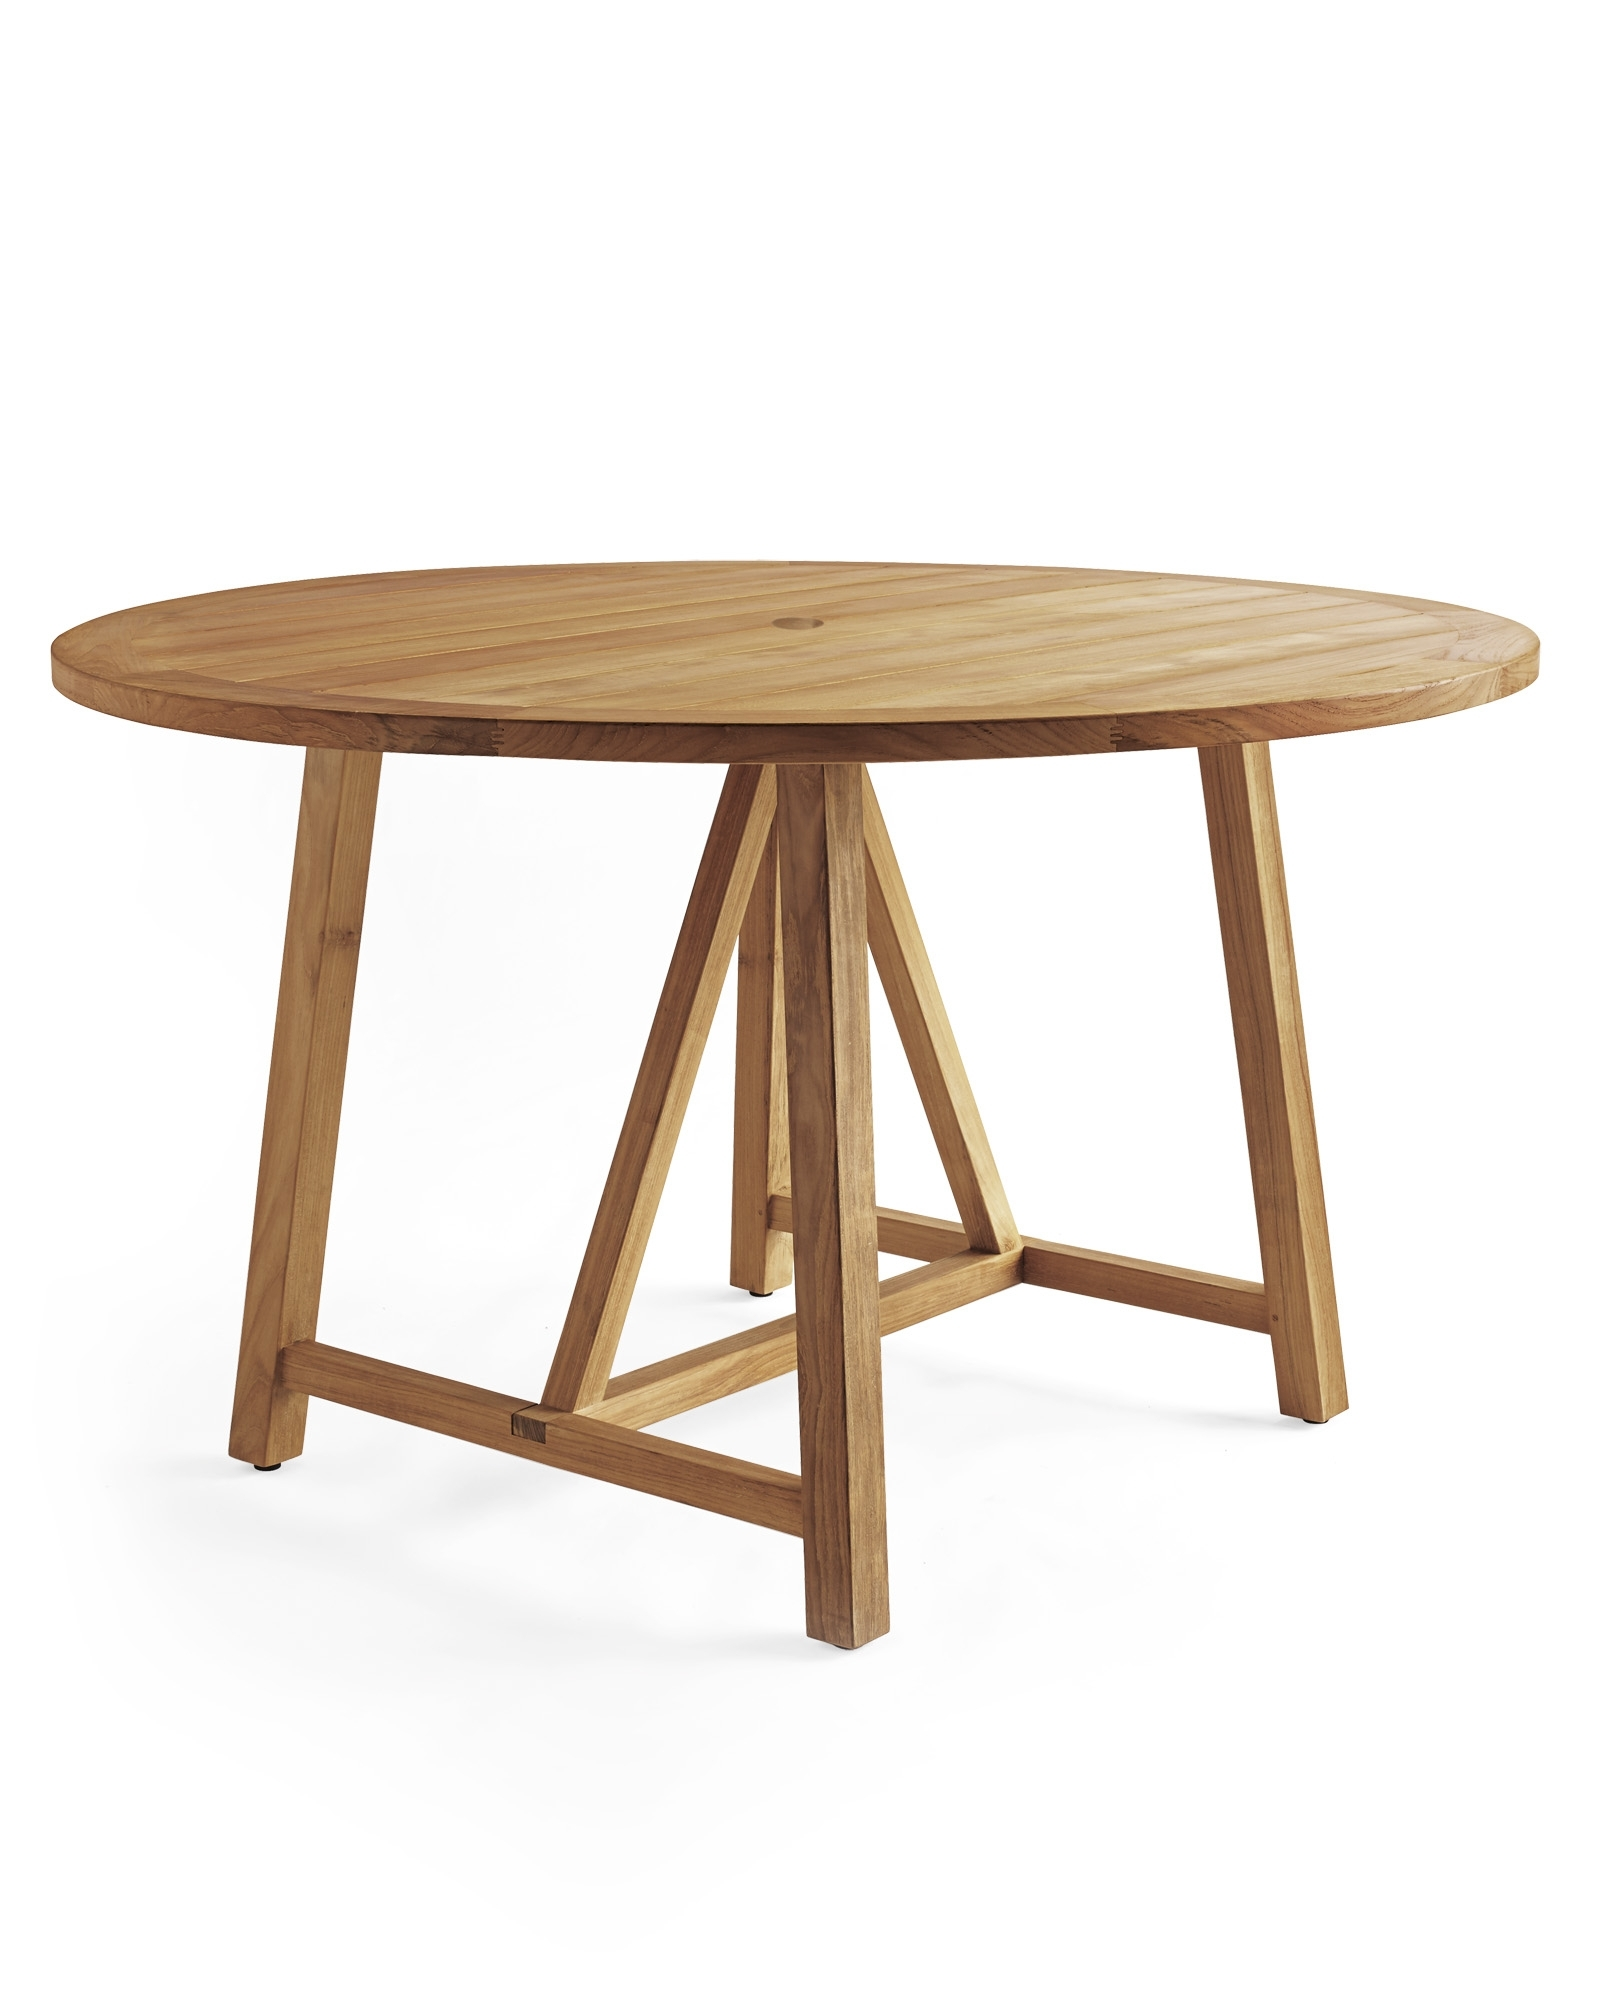 Round Teak Dining Tables Throughout Most Up To Date Crosby Teak Round Dining Table – Serena & Lily (View 16 of 25)